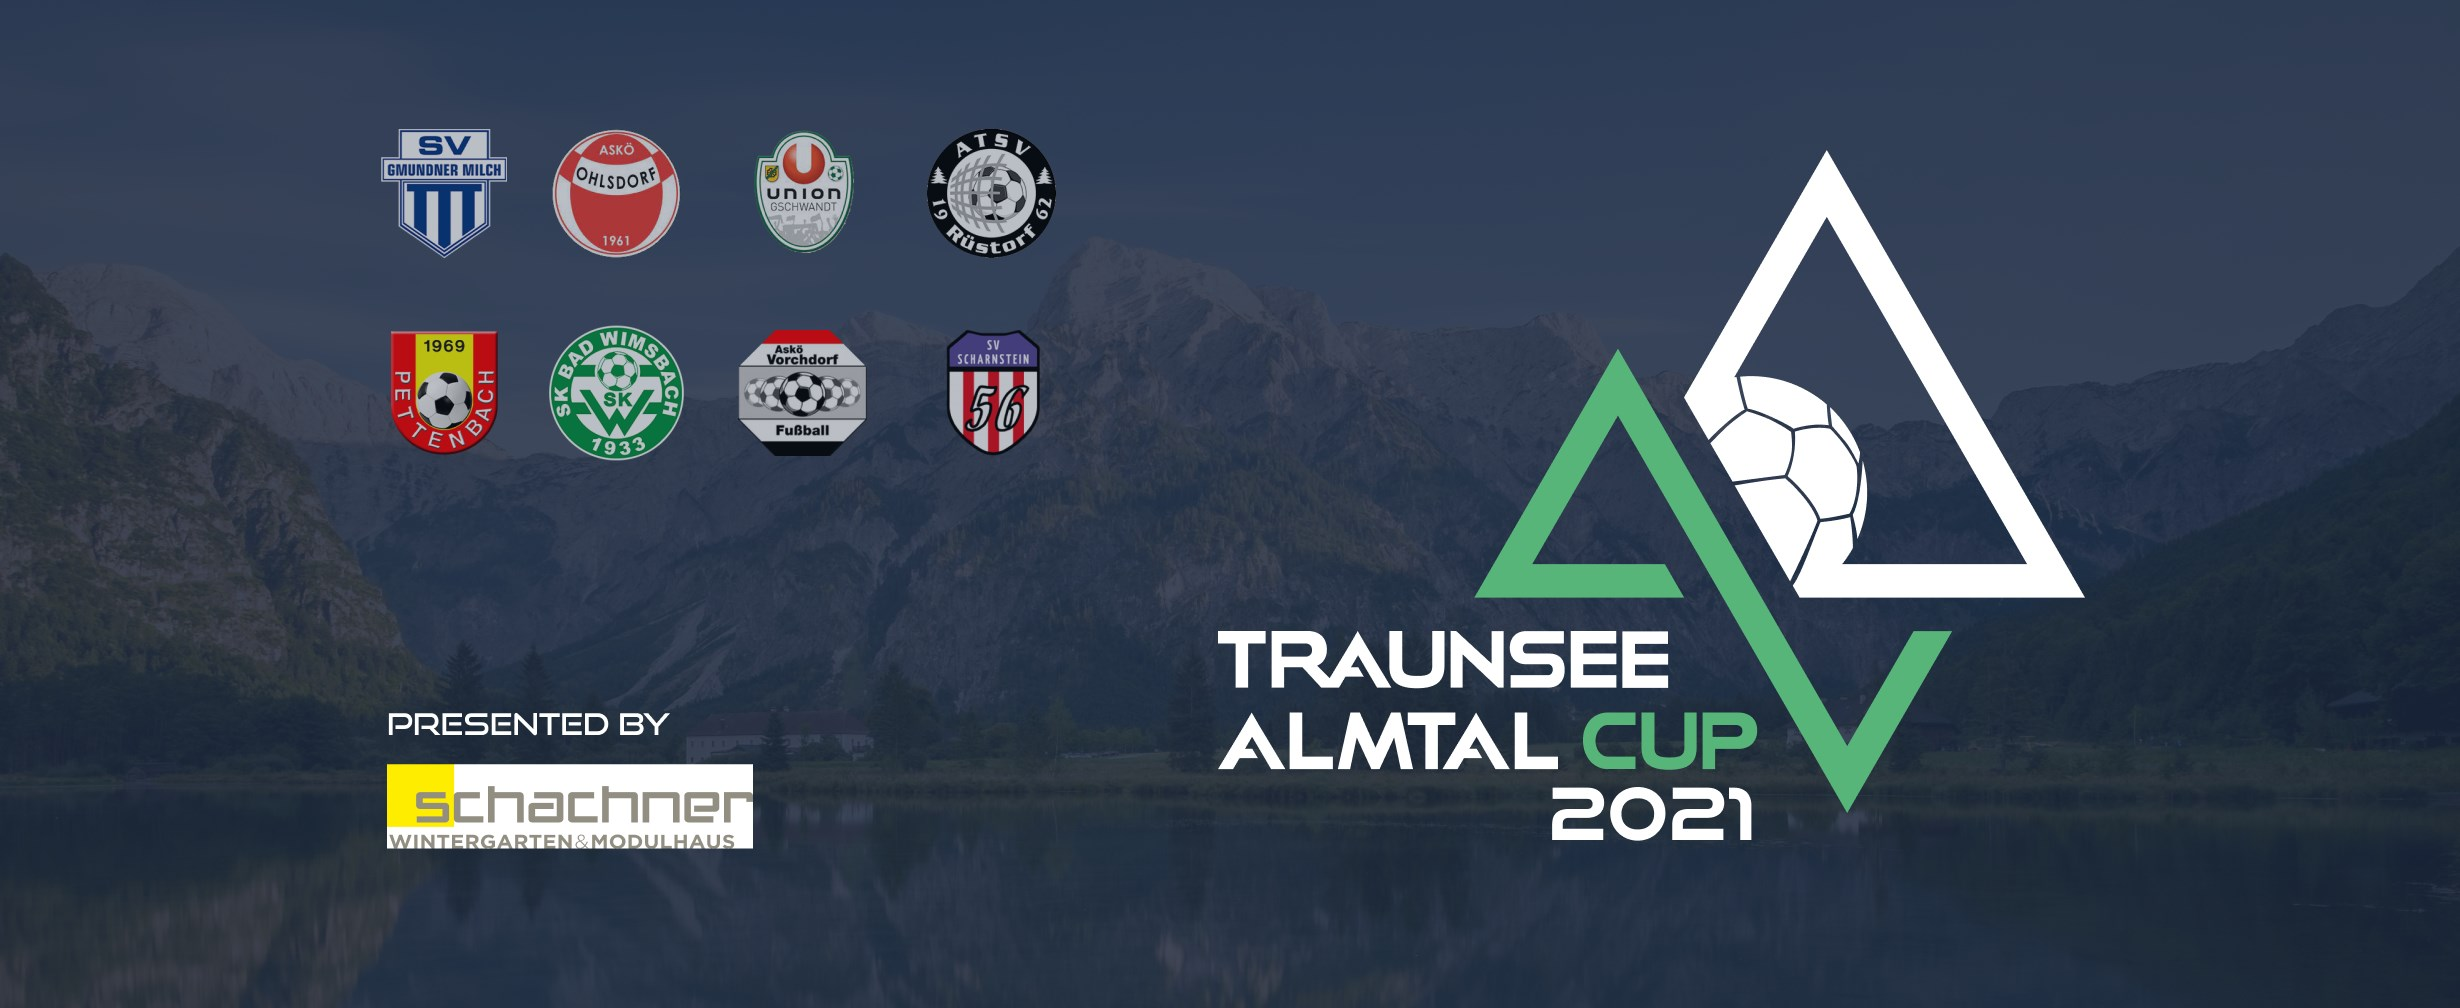 Traunsee-Almtal-Cup